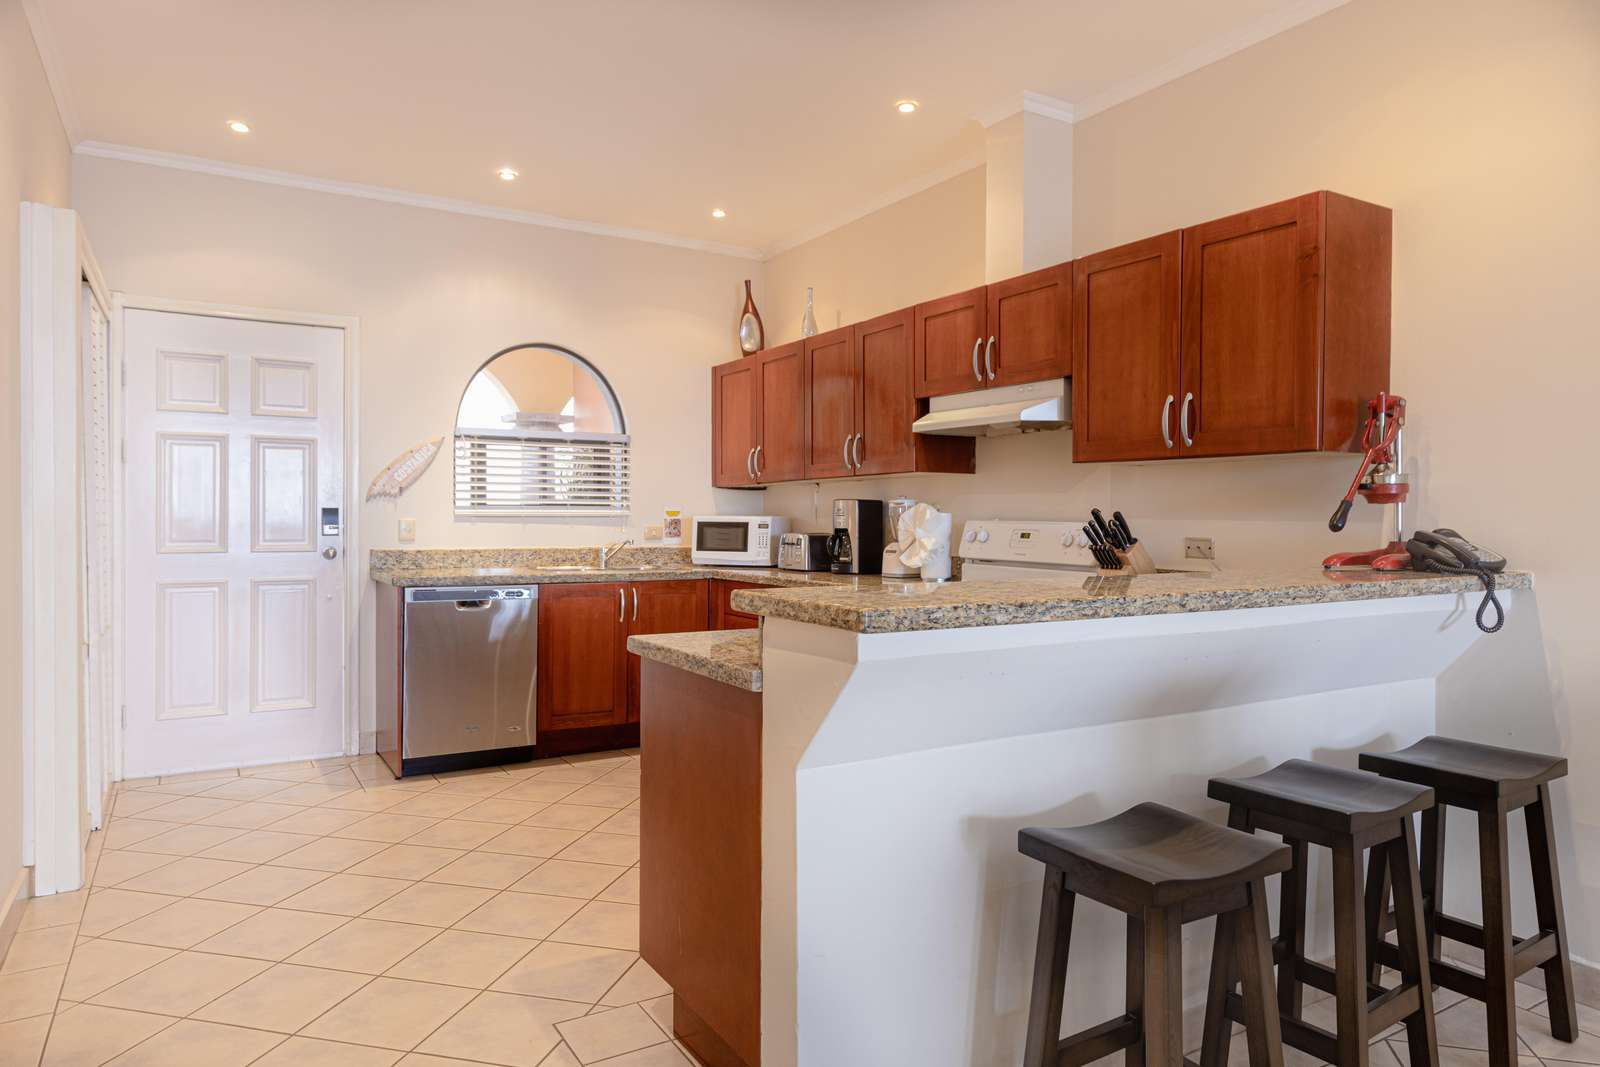 Gourmet kitchen, breakfast bar with seating for 3